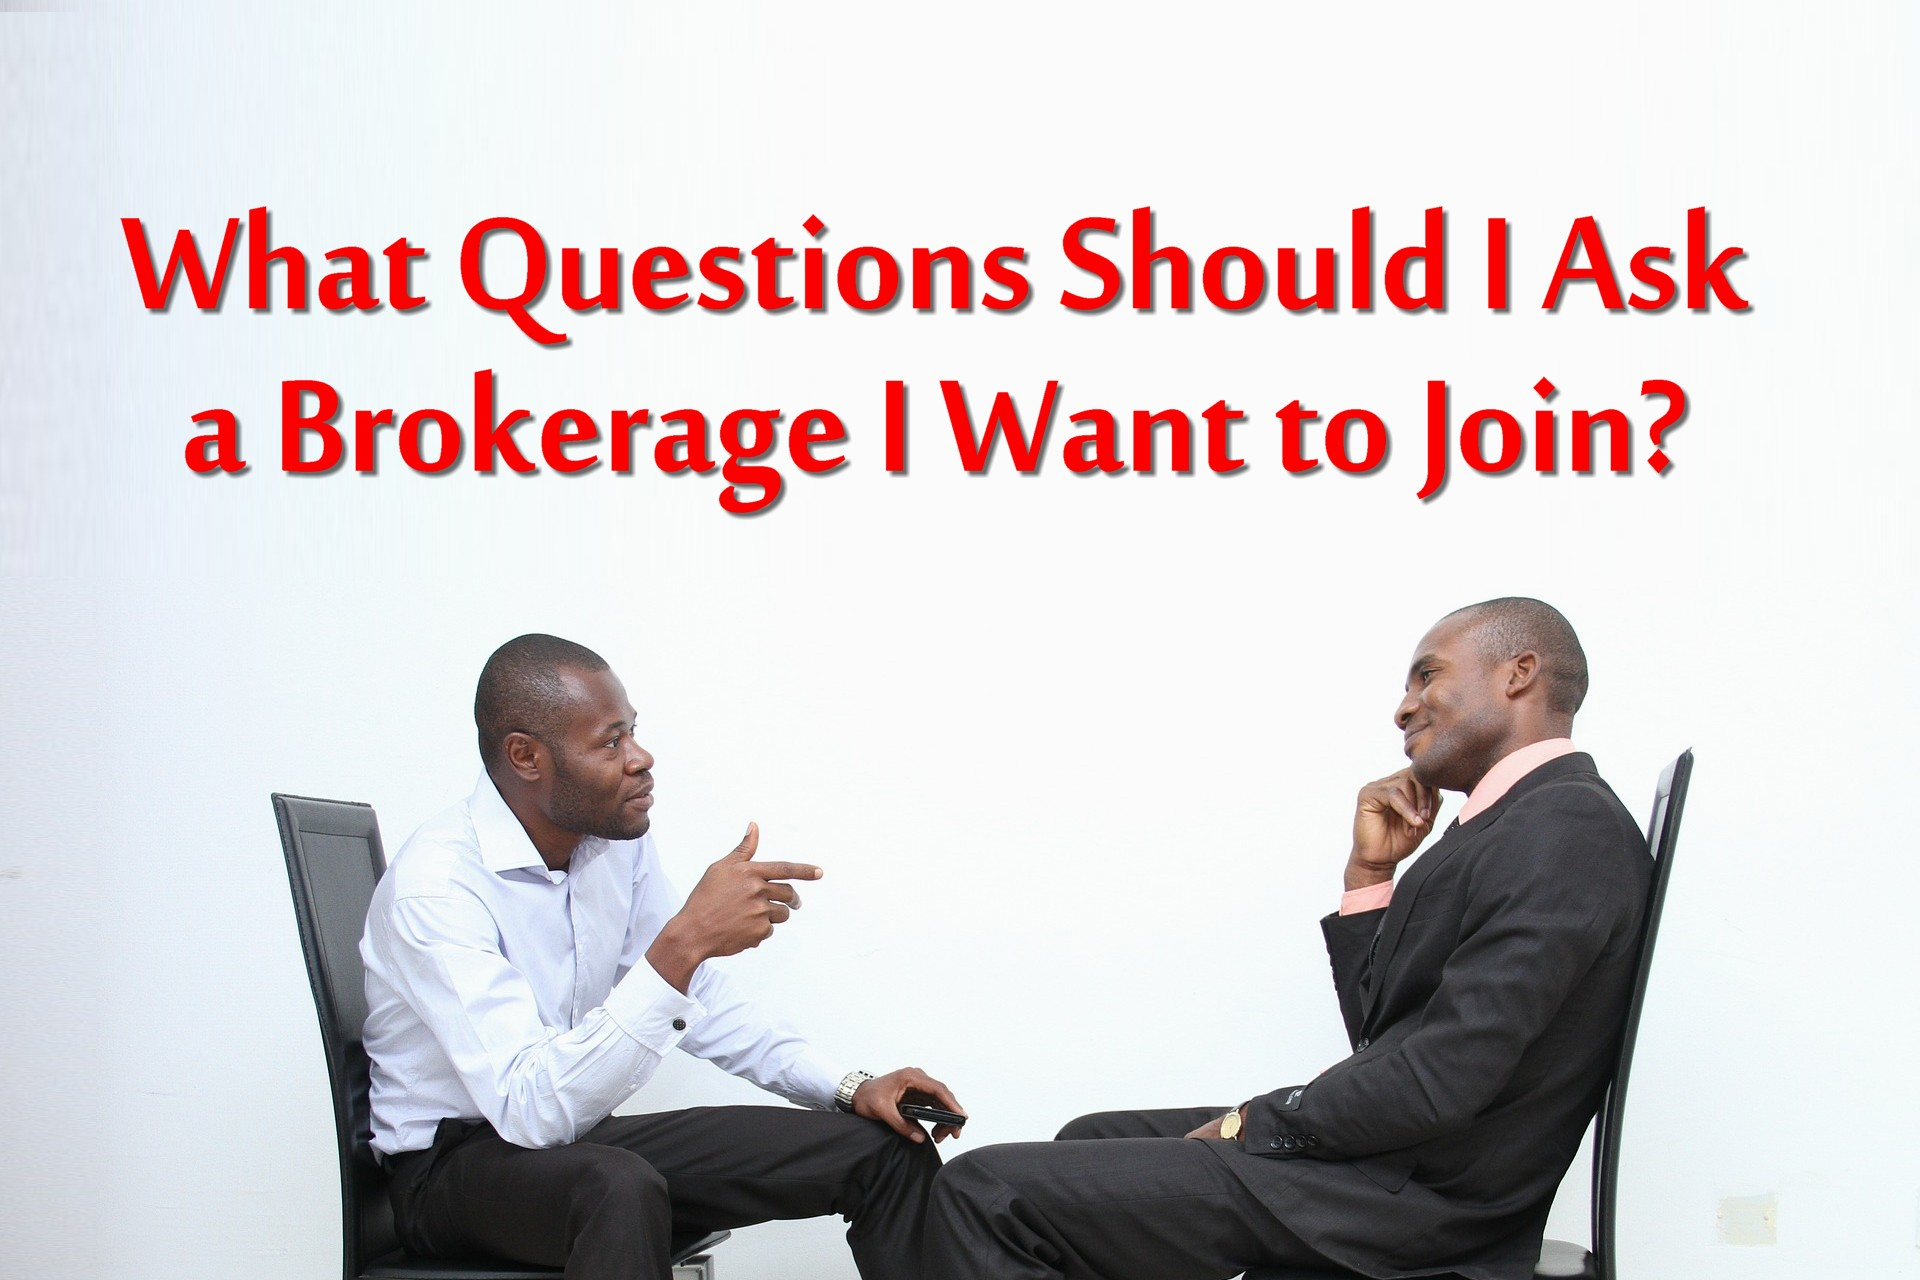 What Questions Should I Ask A Brokerage I Would Like to Join